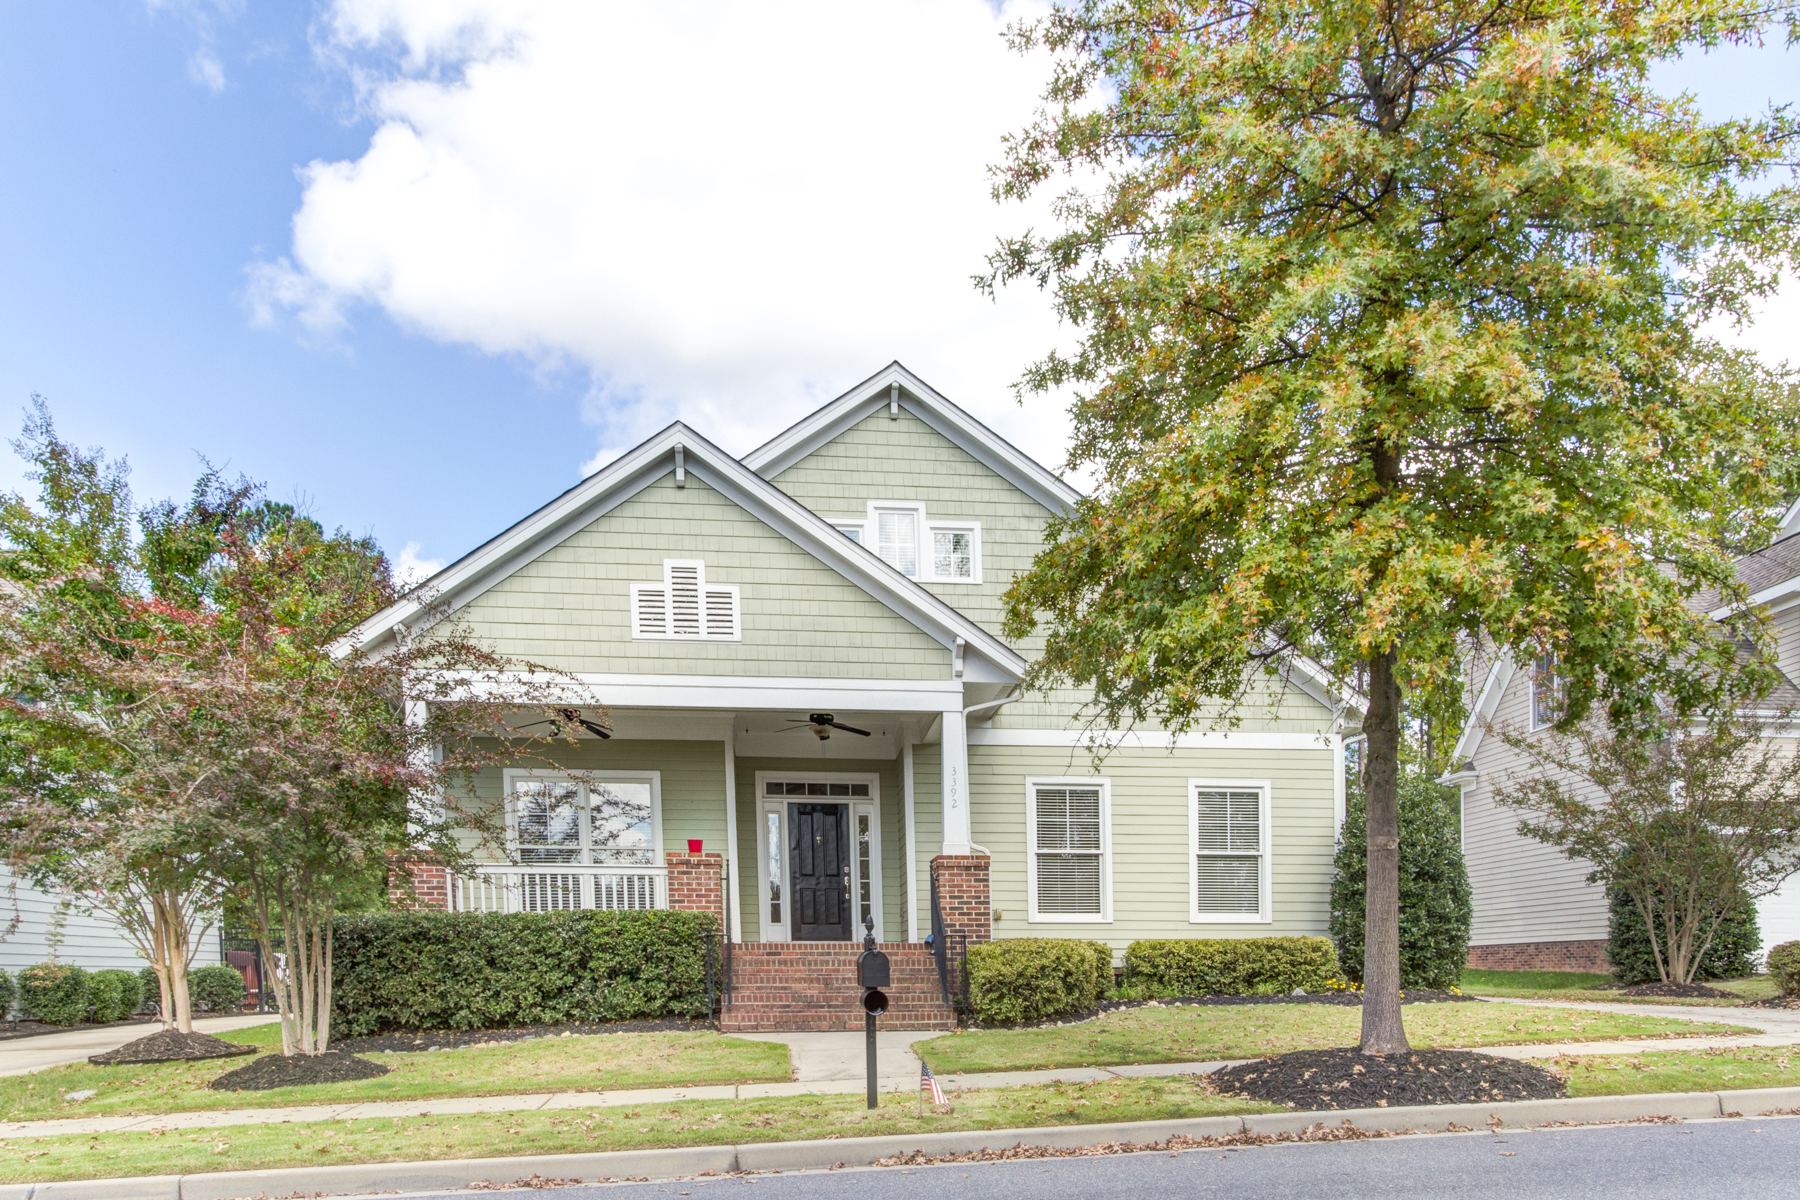 Single Family Home for Sale at BAXTER VILLAGE 3392 Richards Fort Mill, South Carolina 29708 United States